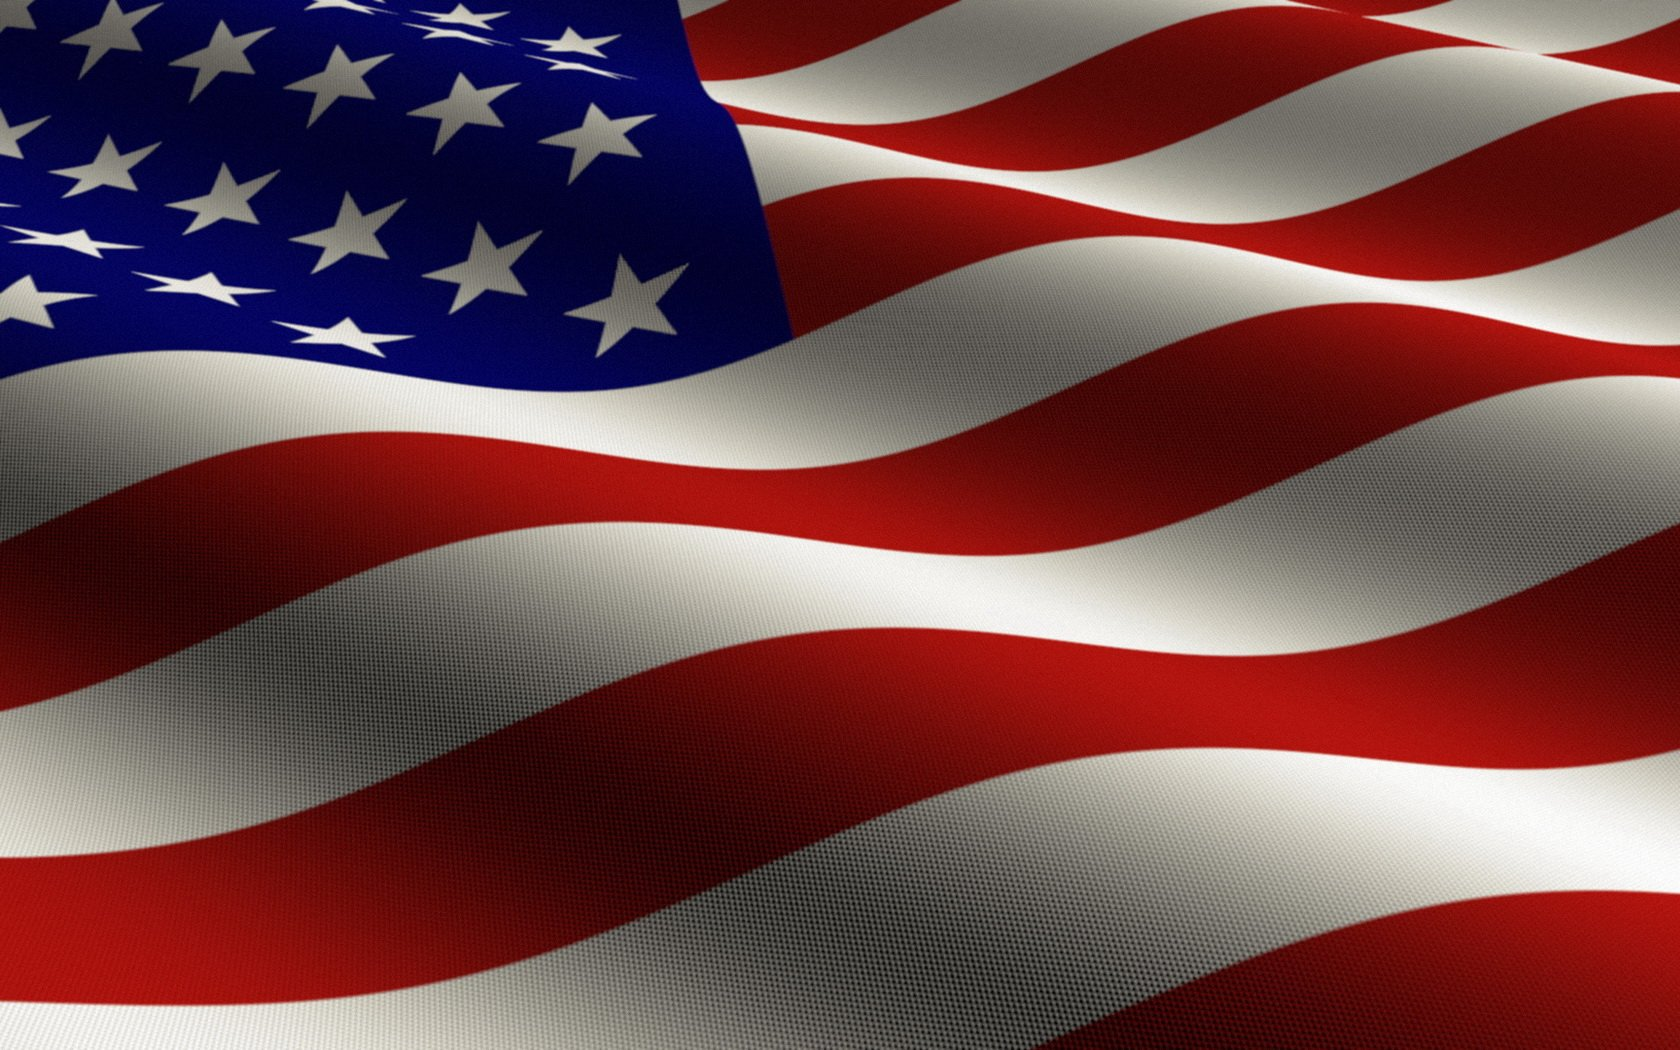 USA American Flag wallpaper background 1680x1050